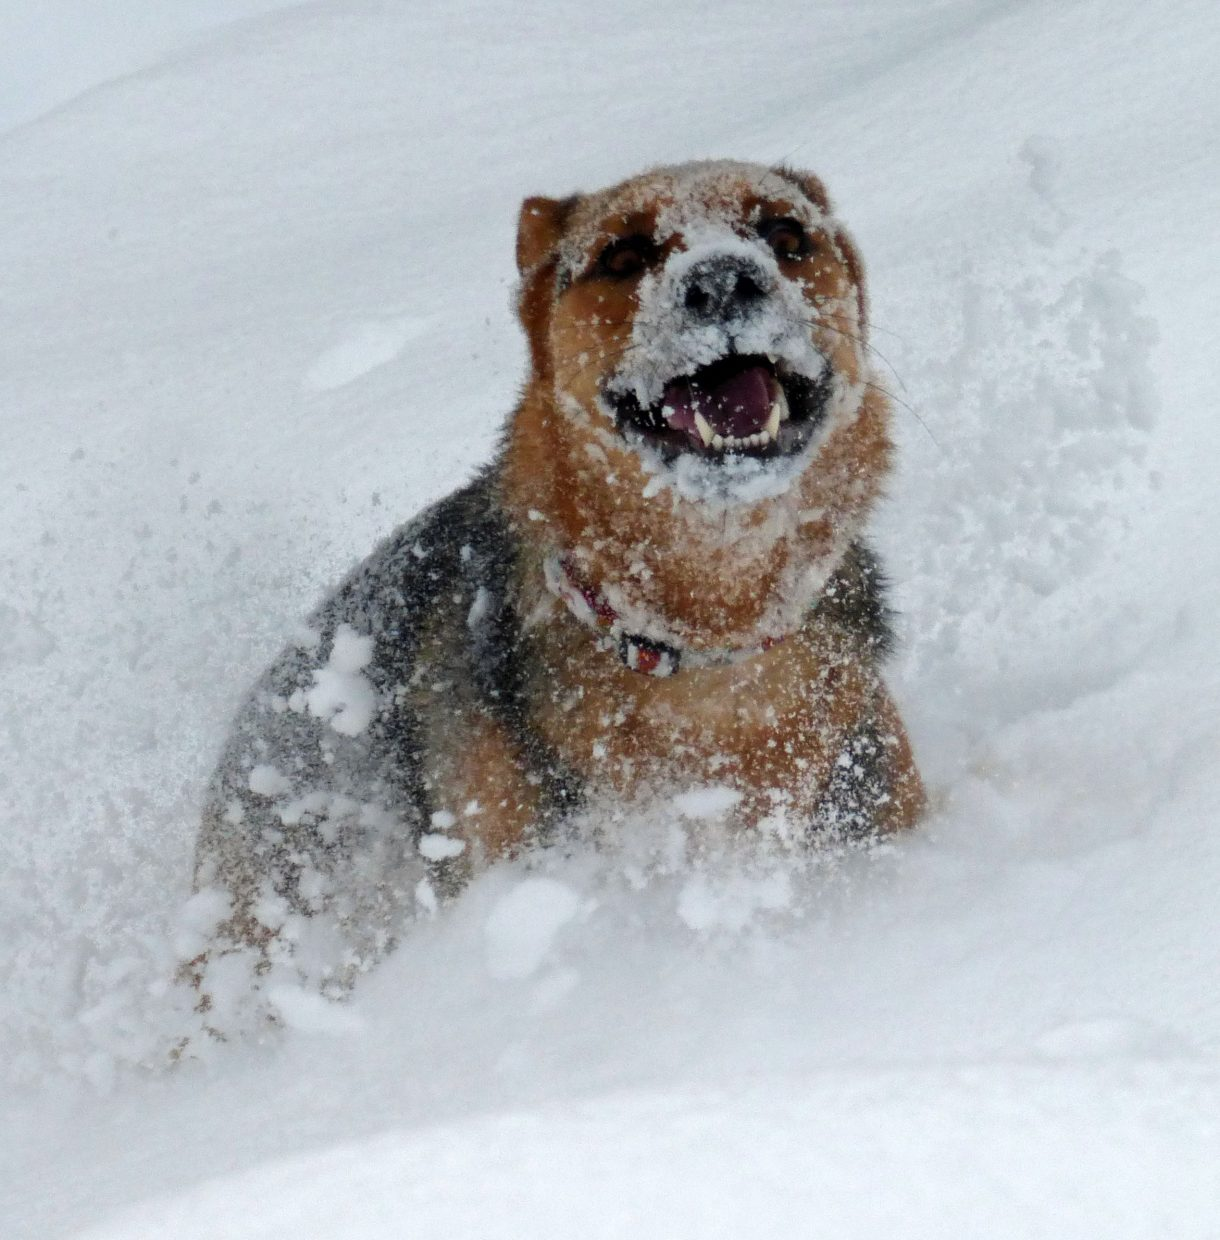 You're addicted to the fresh powder if you look like this while enjoying it! Submitted by: Allison Keating